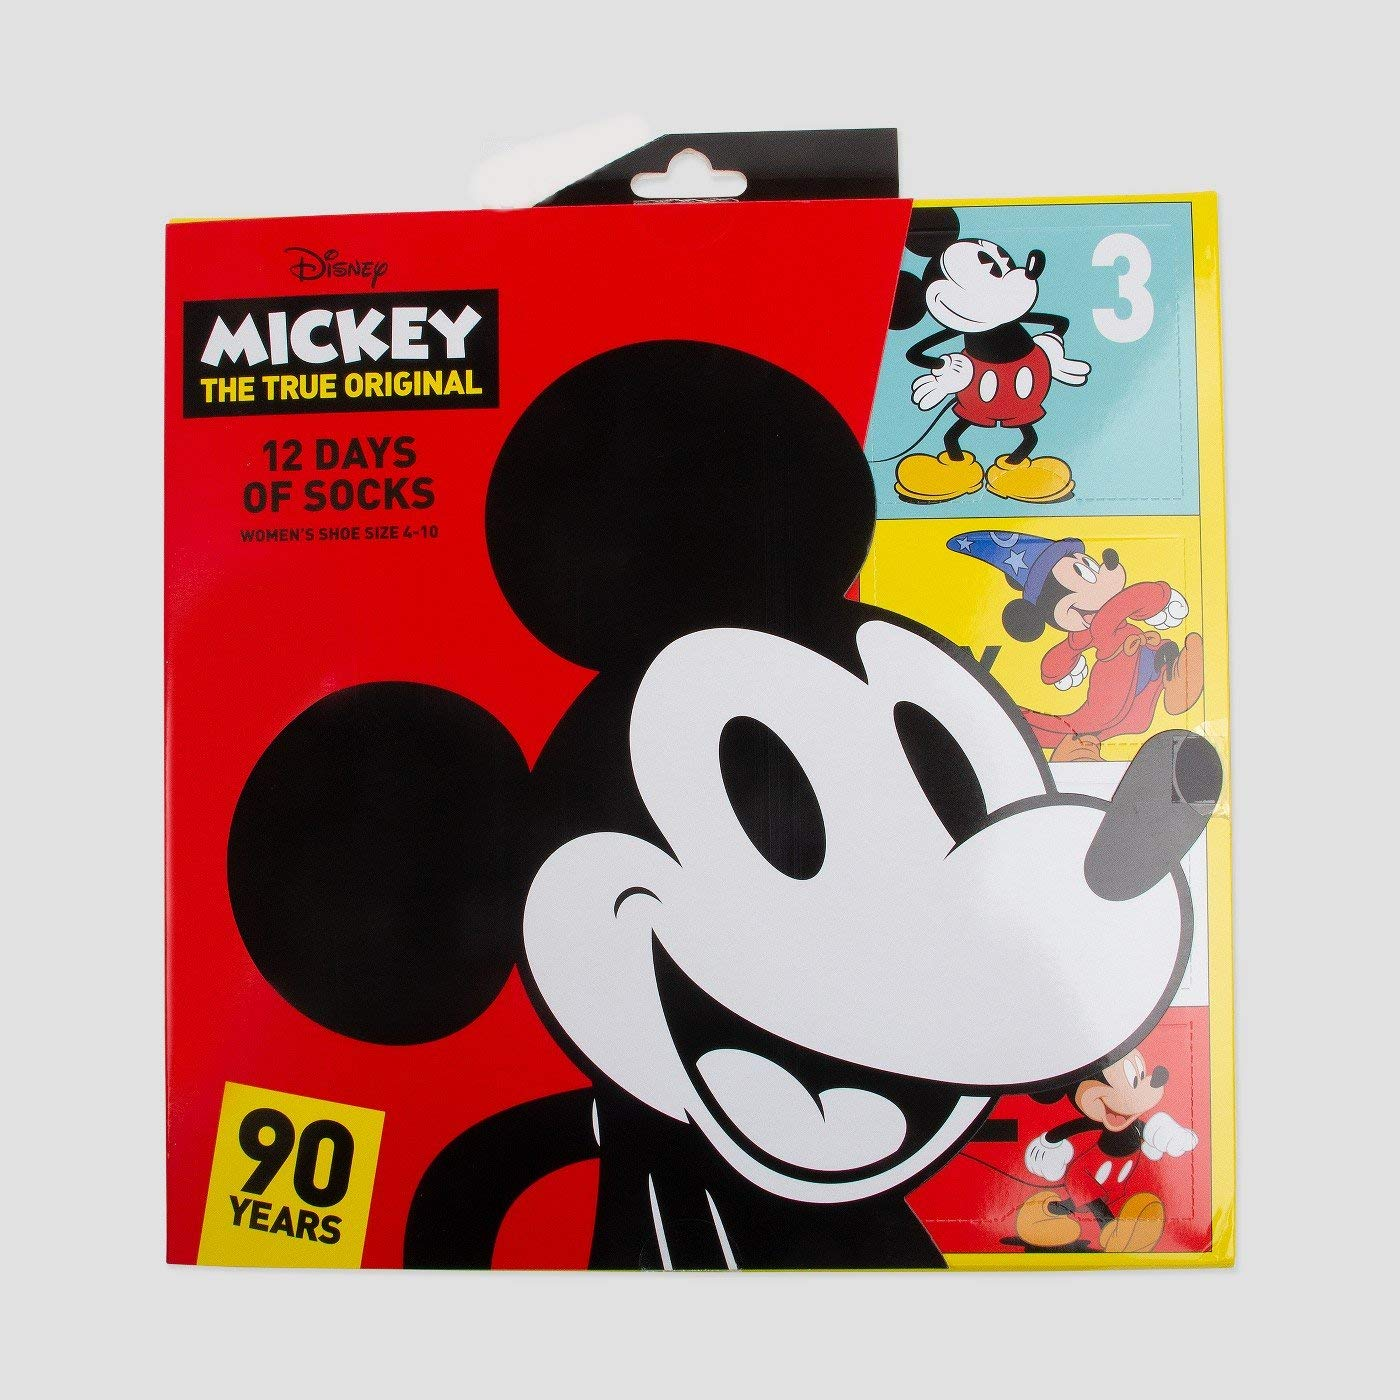 Womens Disney Mickey Mouse 12 Days of Socks Gift Set 90th Anniversary by Disney